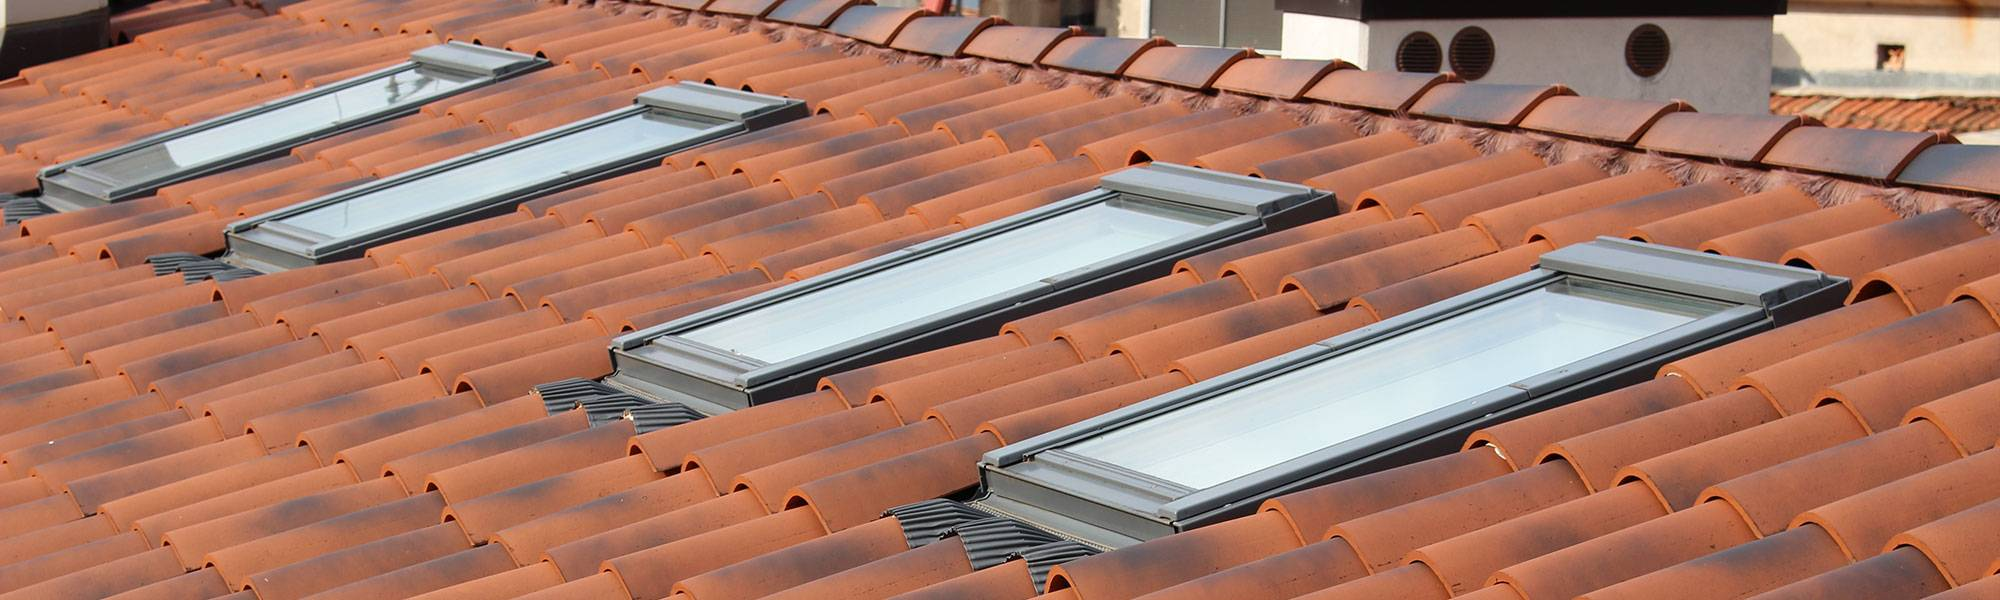 velux windows in a clay tiled roof